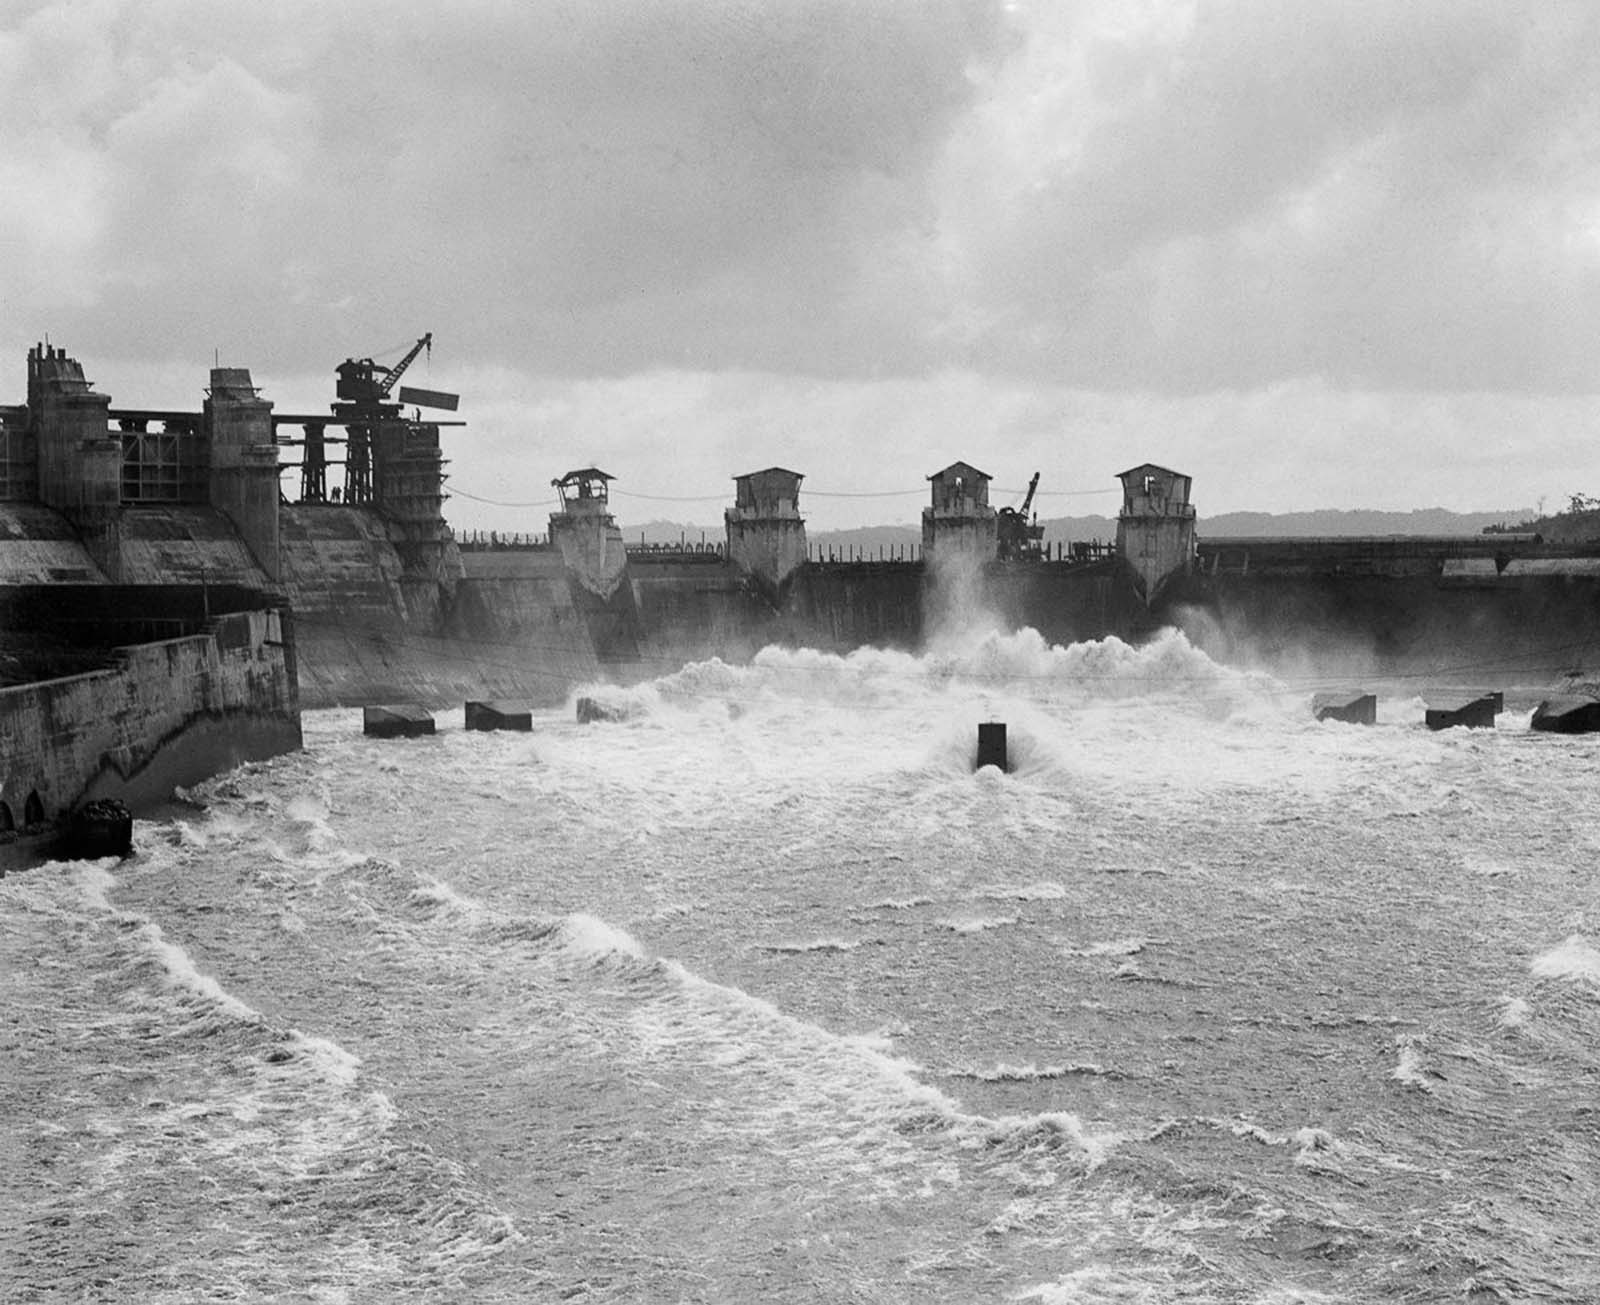 The spillway of the Gatun Dam, which impounds manmade Gatun Lake, a major section of the canal. 1913.